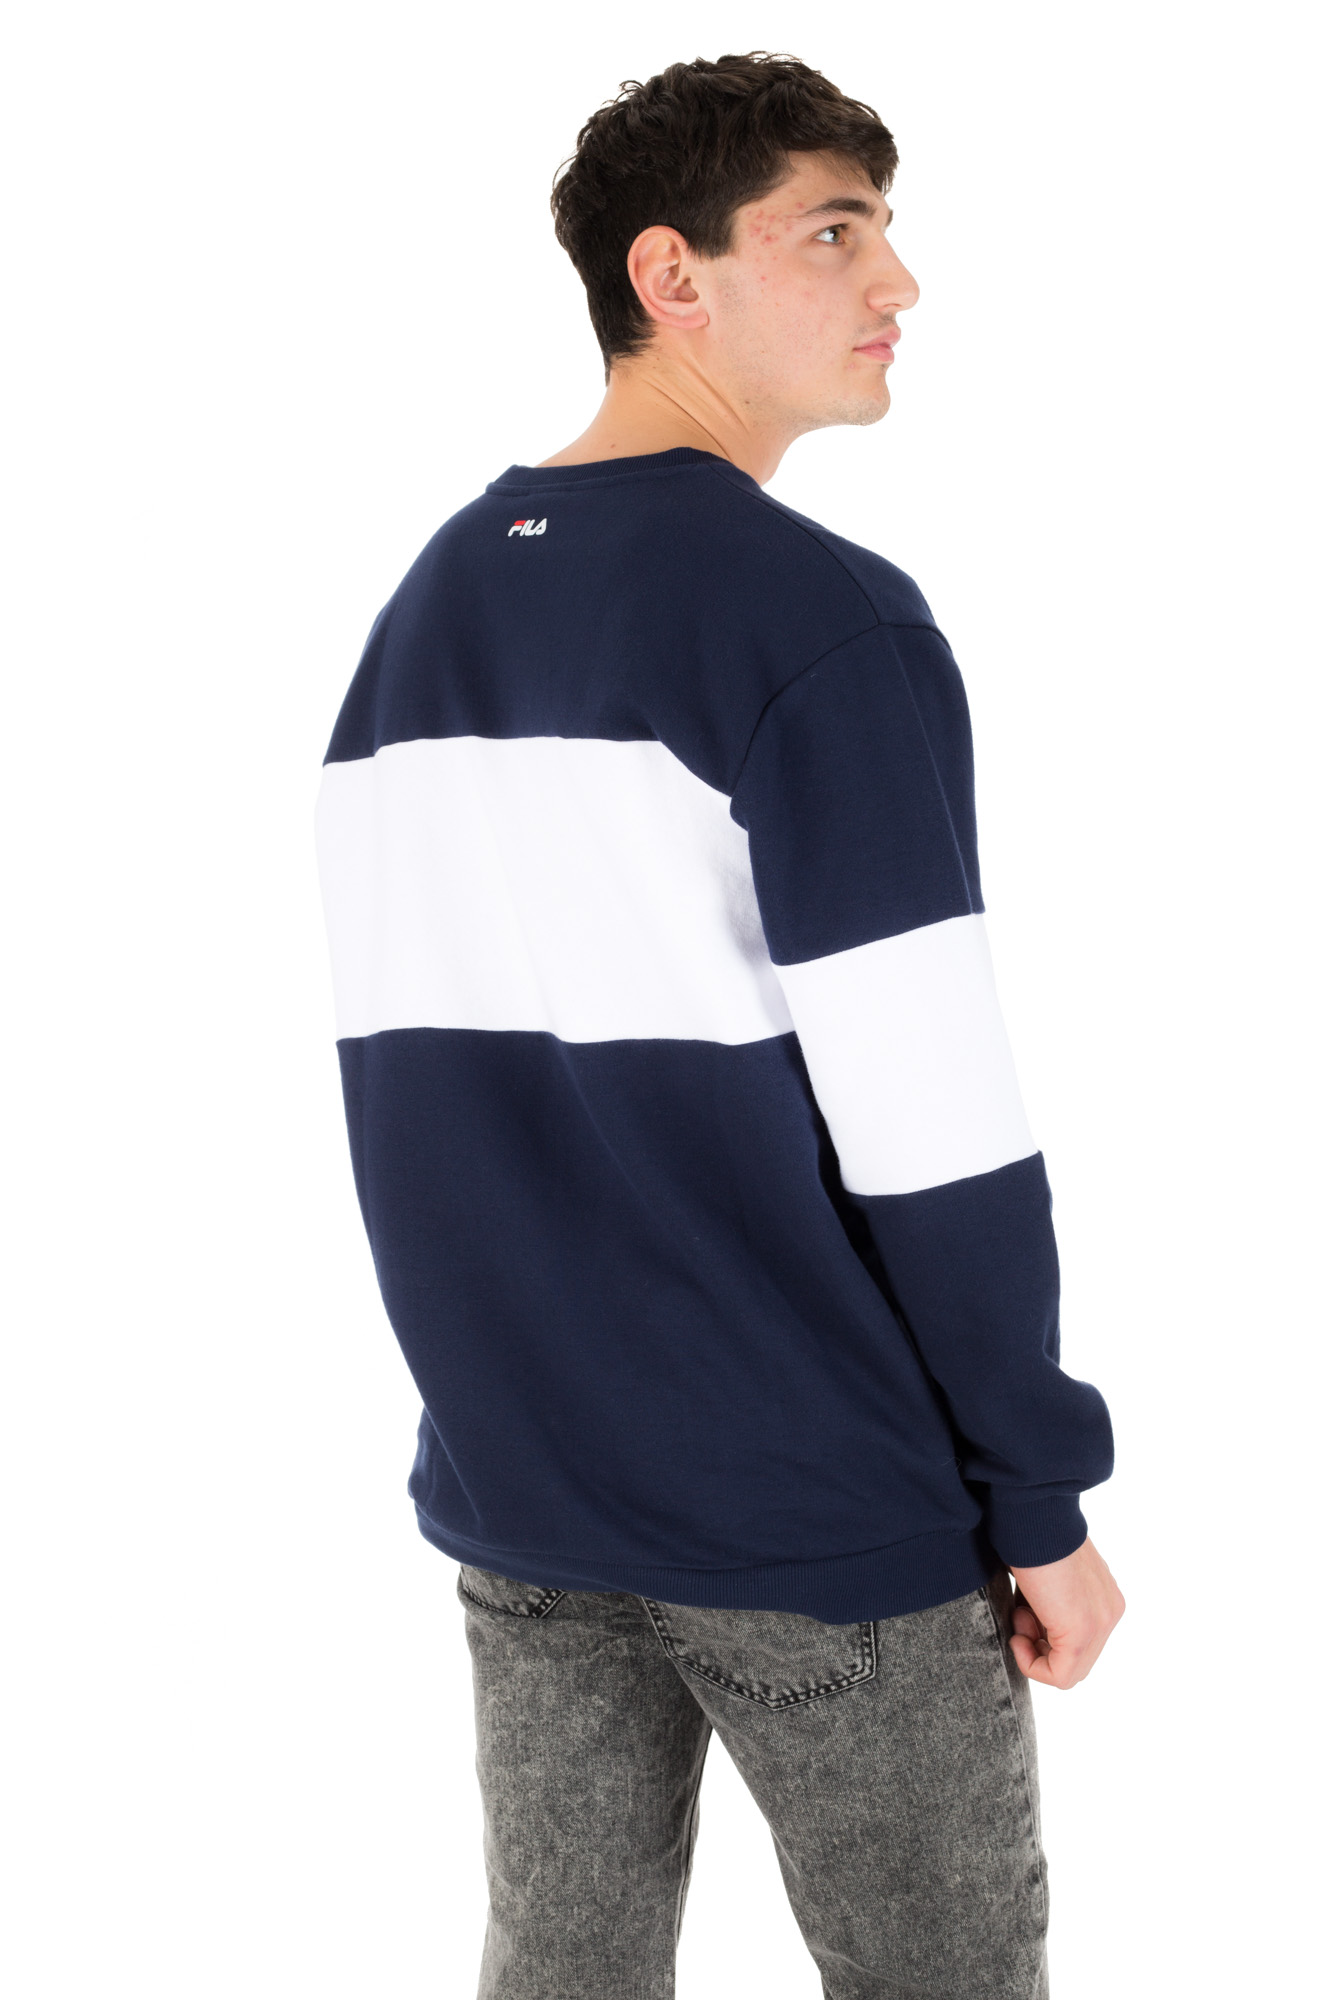 Fila - Unisex Sweatshirt with colour blocks